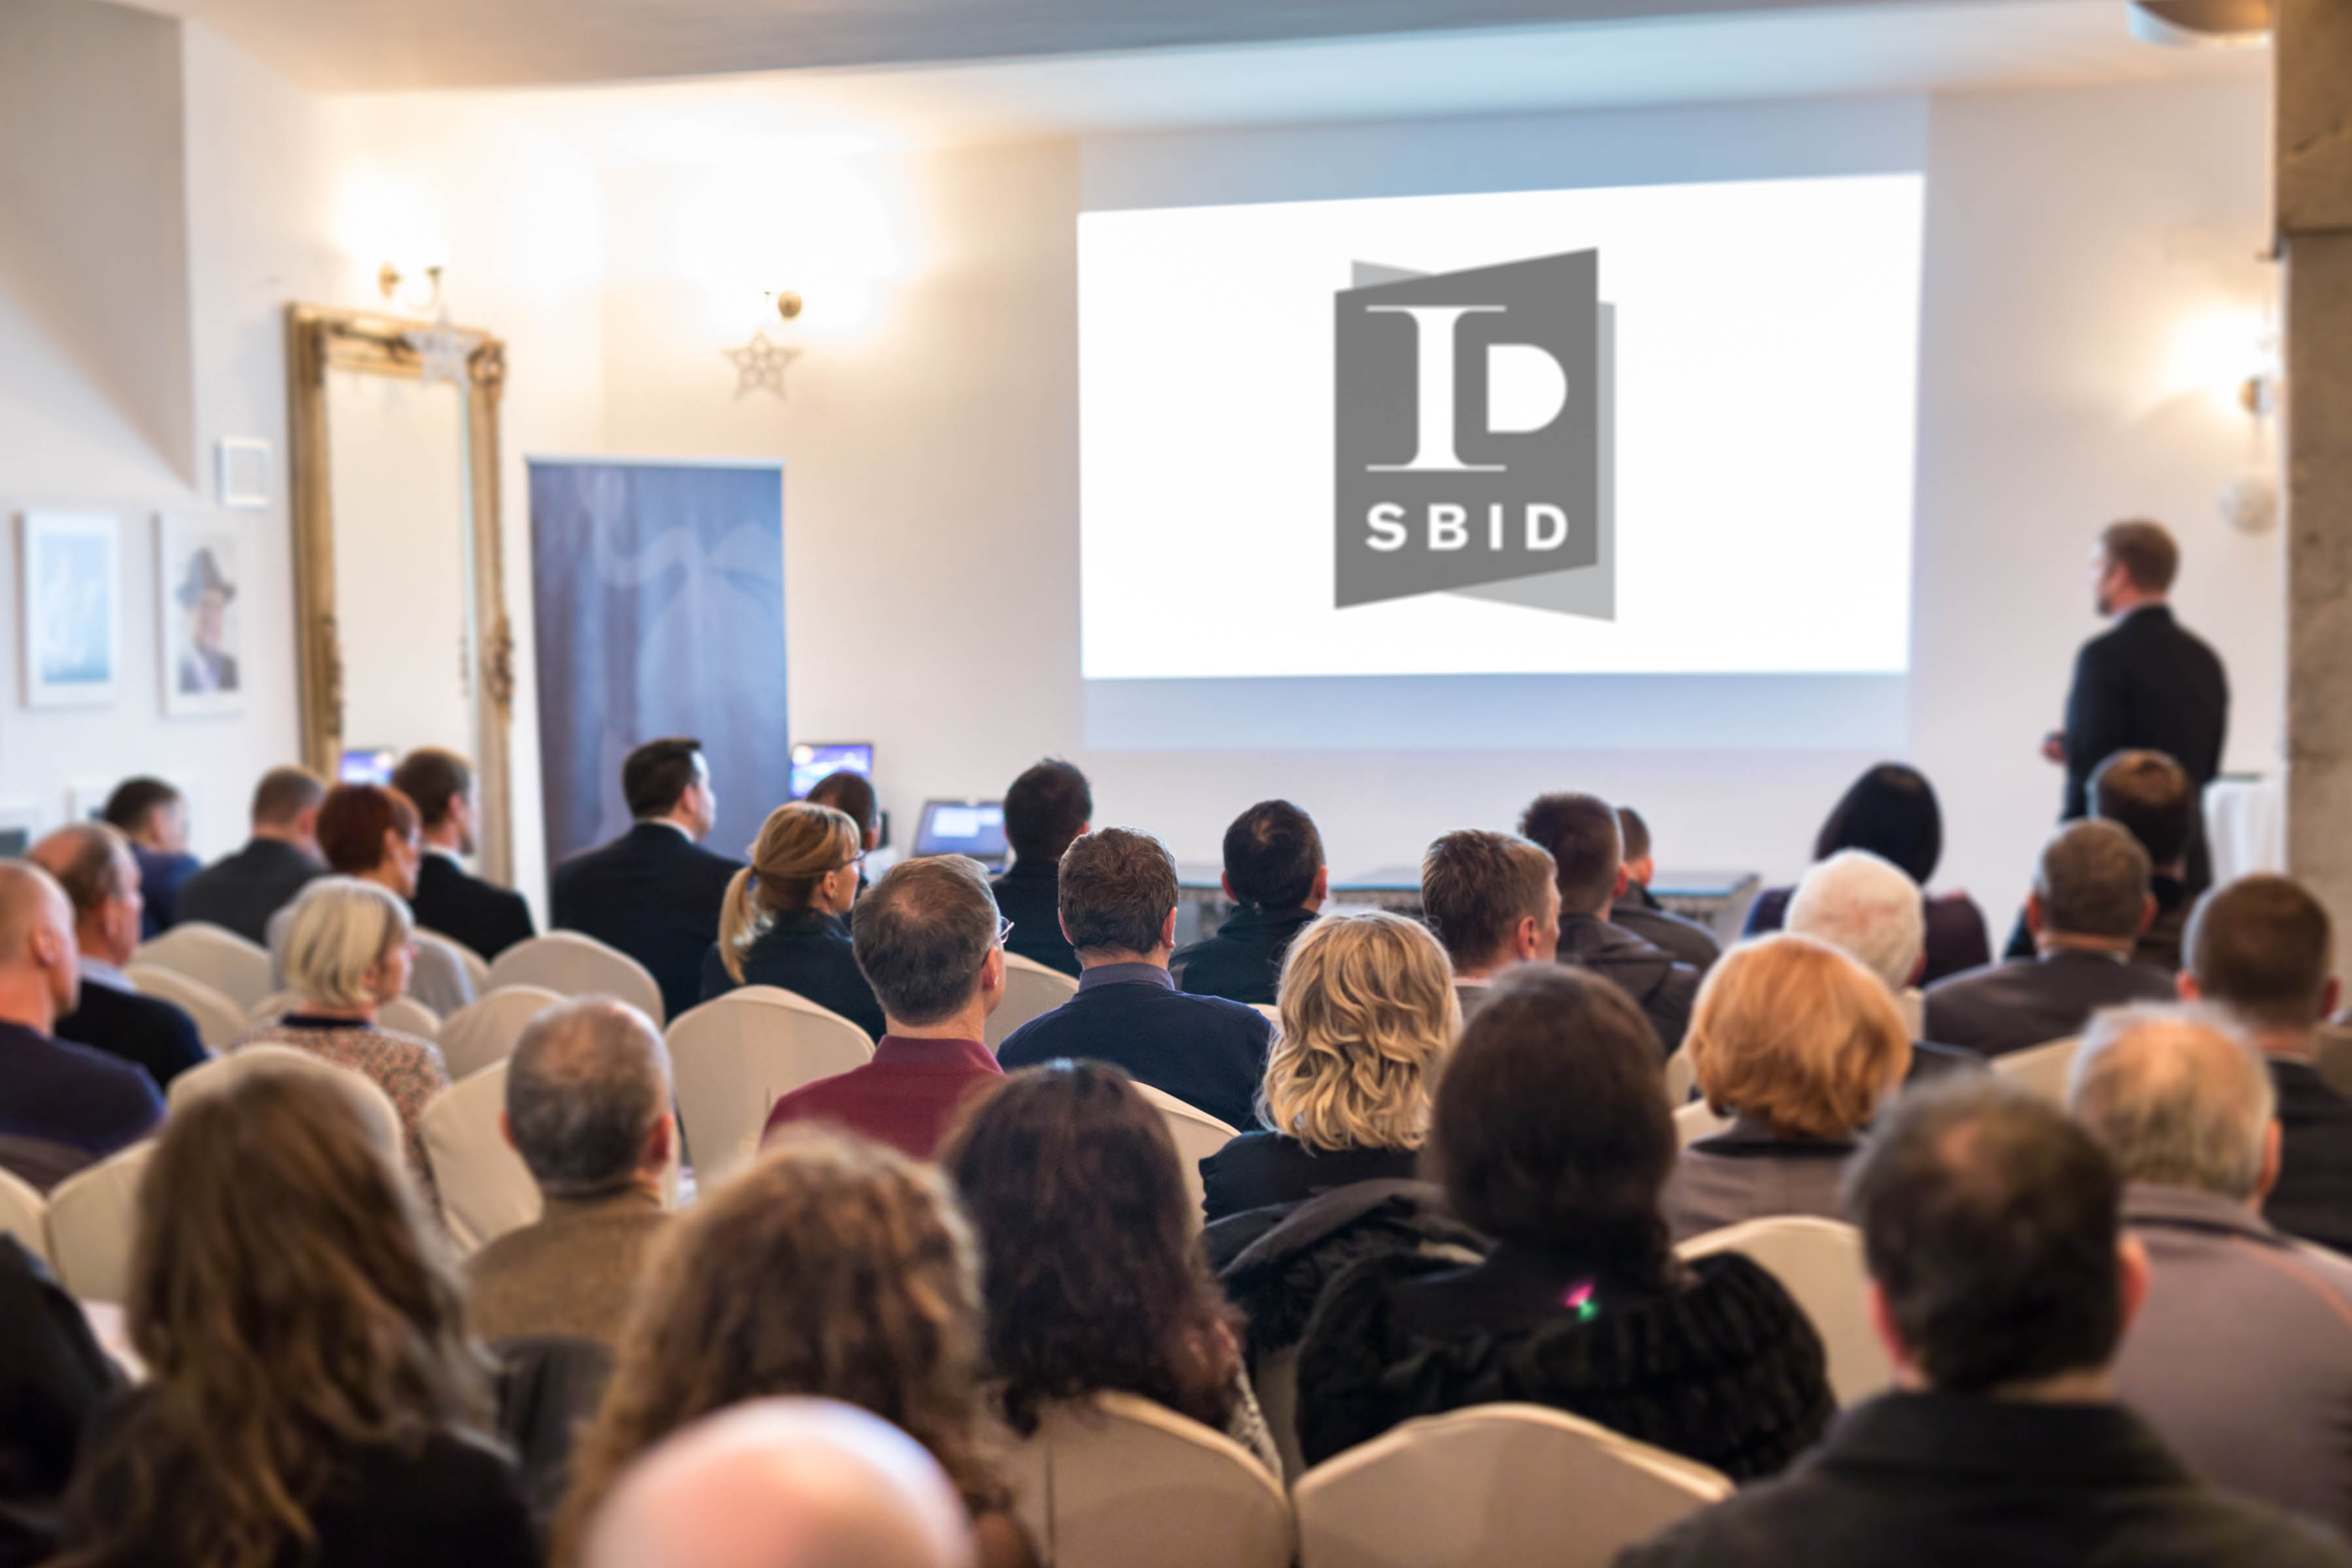 SBID members at an accredited interior design CPD for continuing professional development